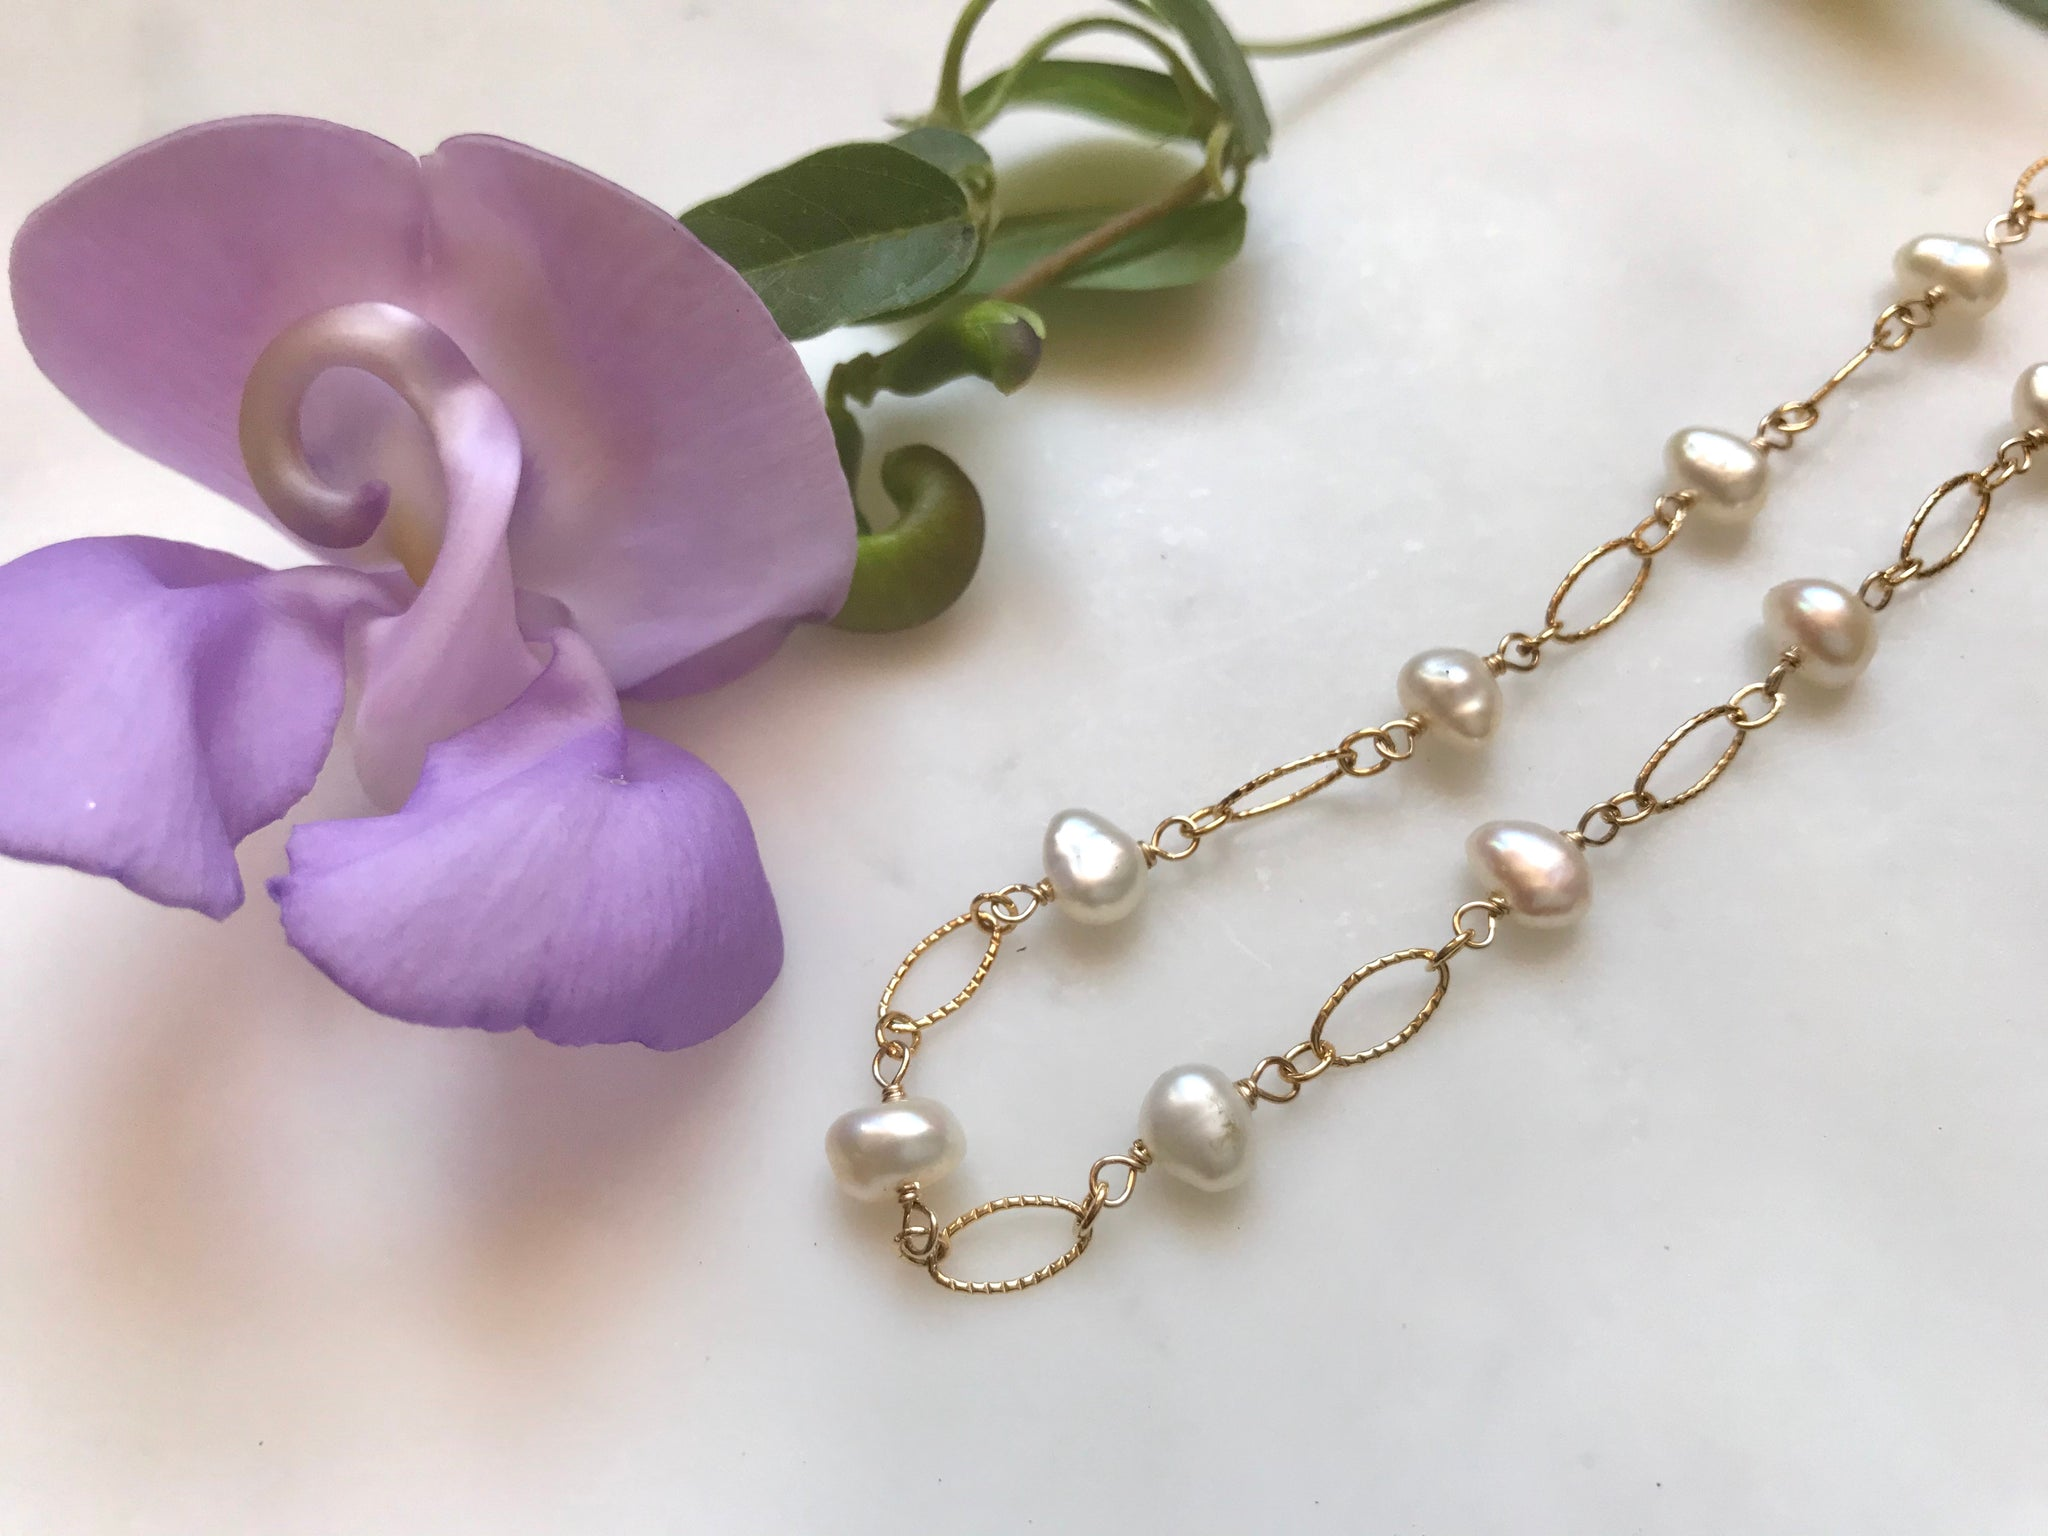 ネックレス 14K ゴールドフィル / Fresh Water Pearl Chain Pearl Necklace 14K Gold-Filled